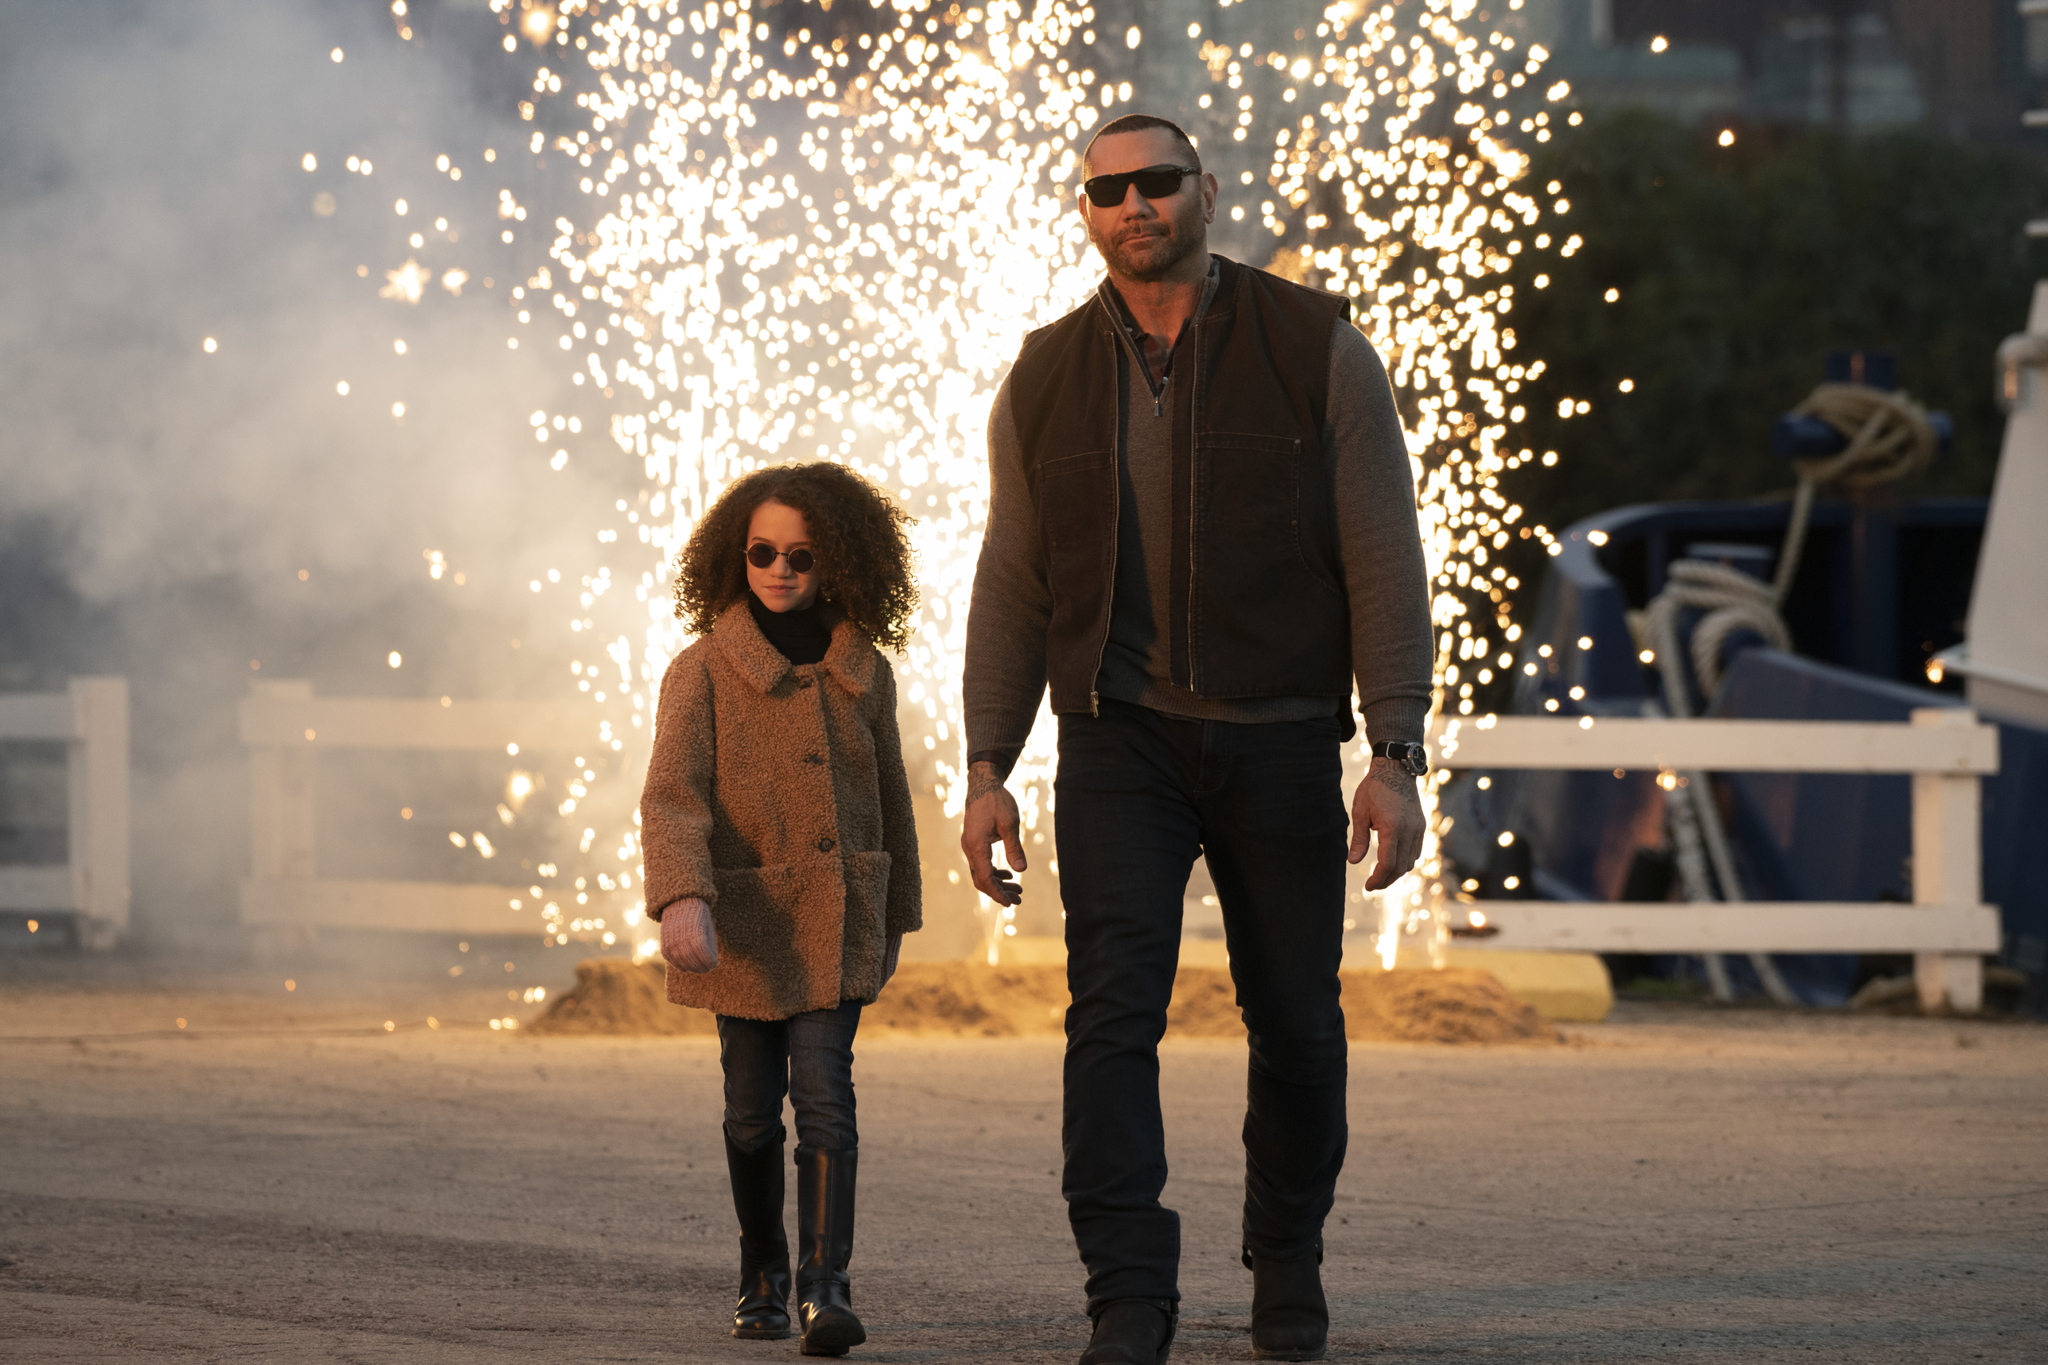 Wacky caper: Action comedy 'My Spy' pairs CIA agent with precocious 9-year-old